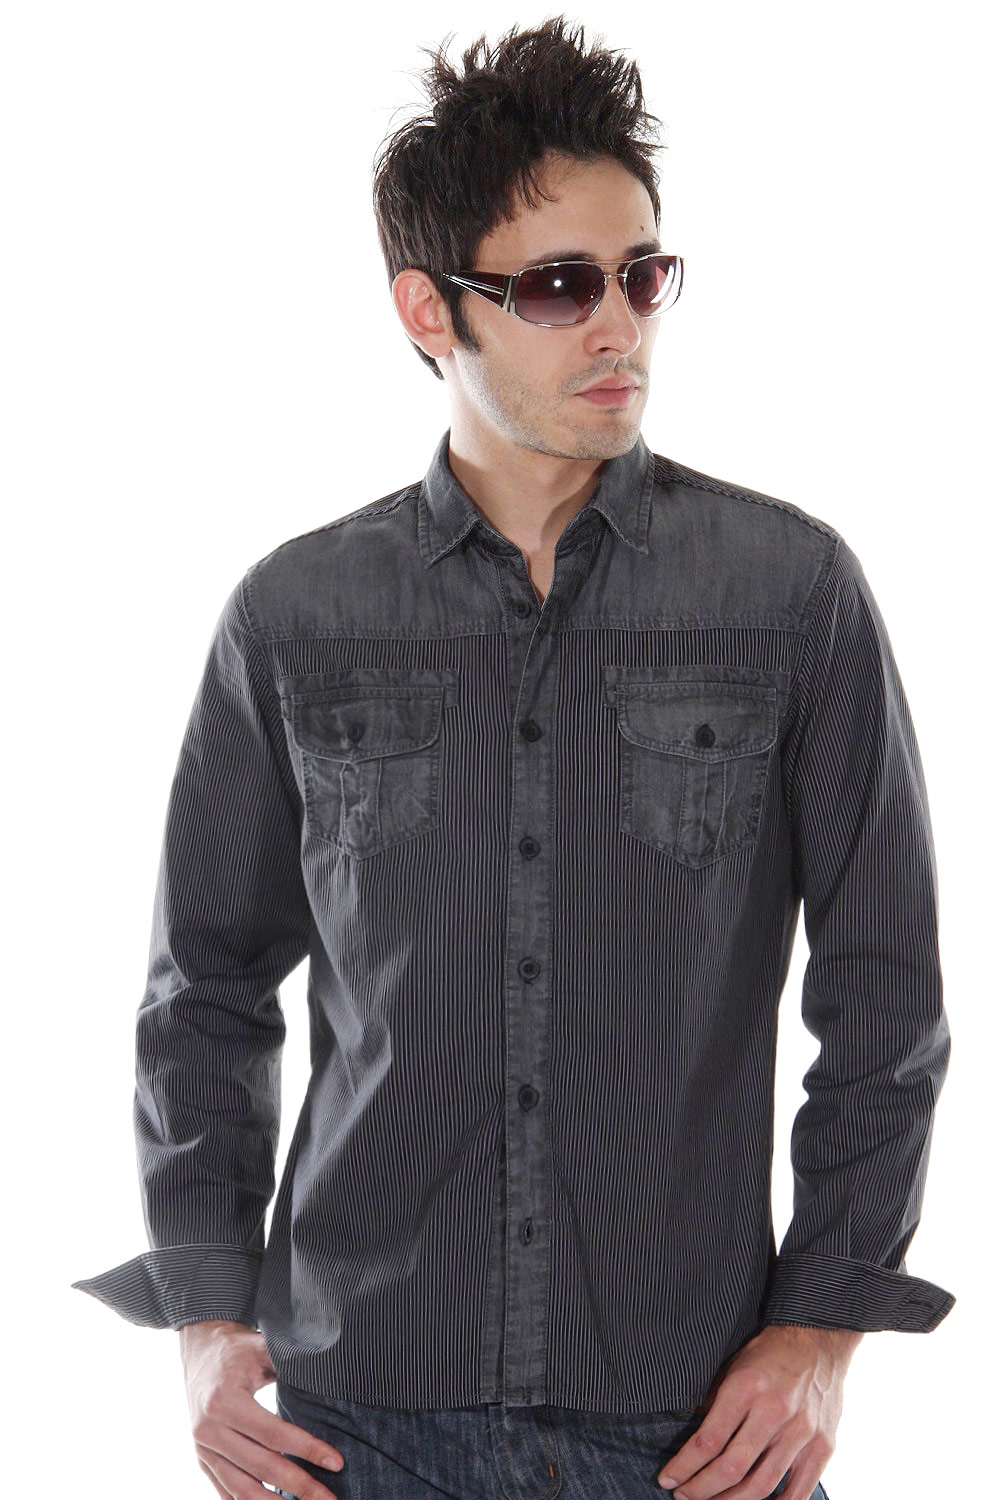 EXUMA long sleeve shirt at oboy.com